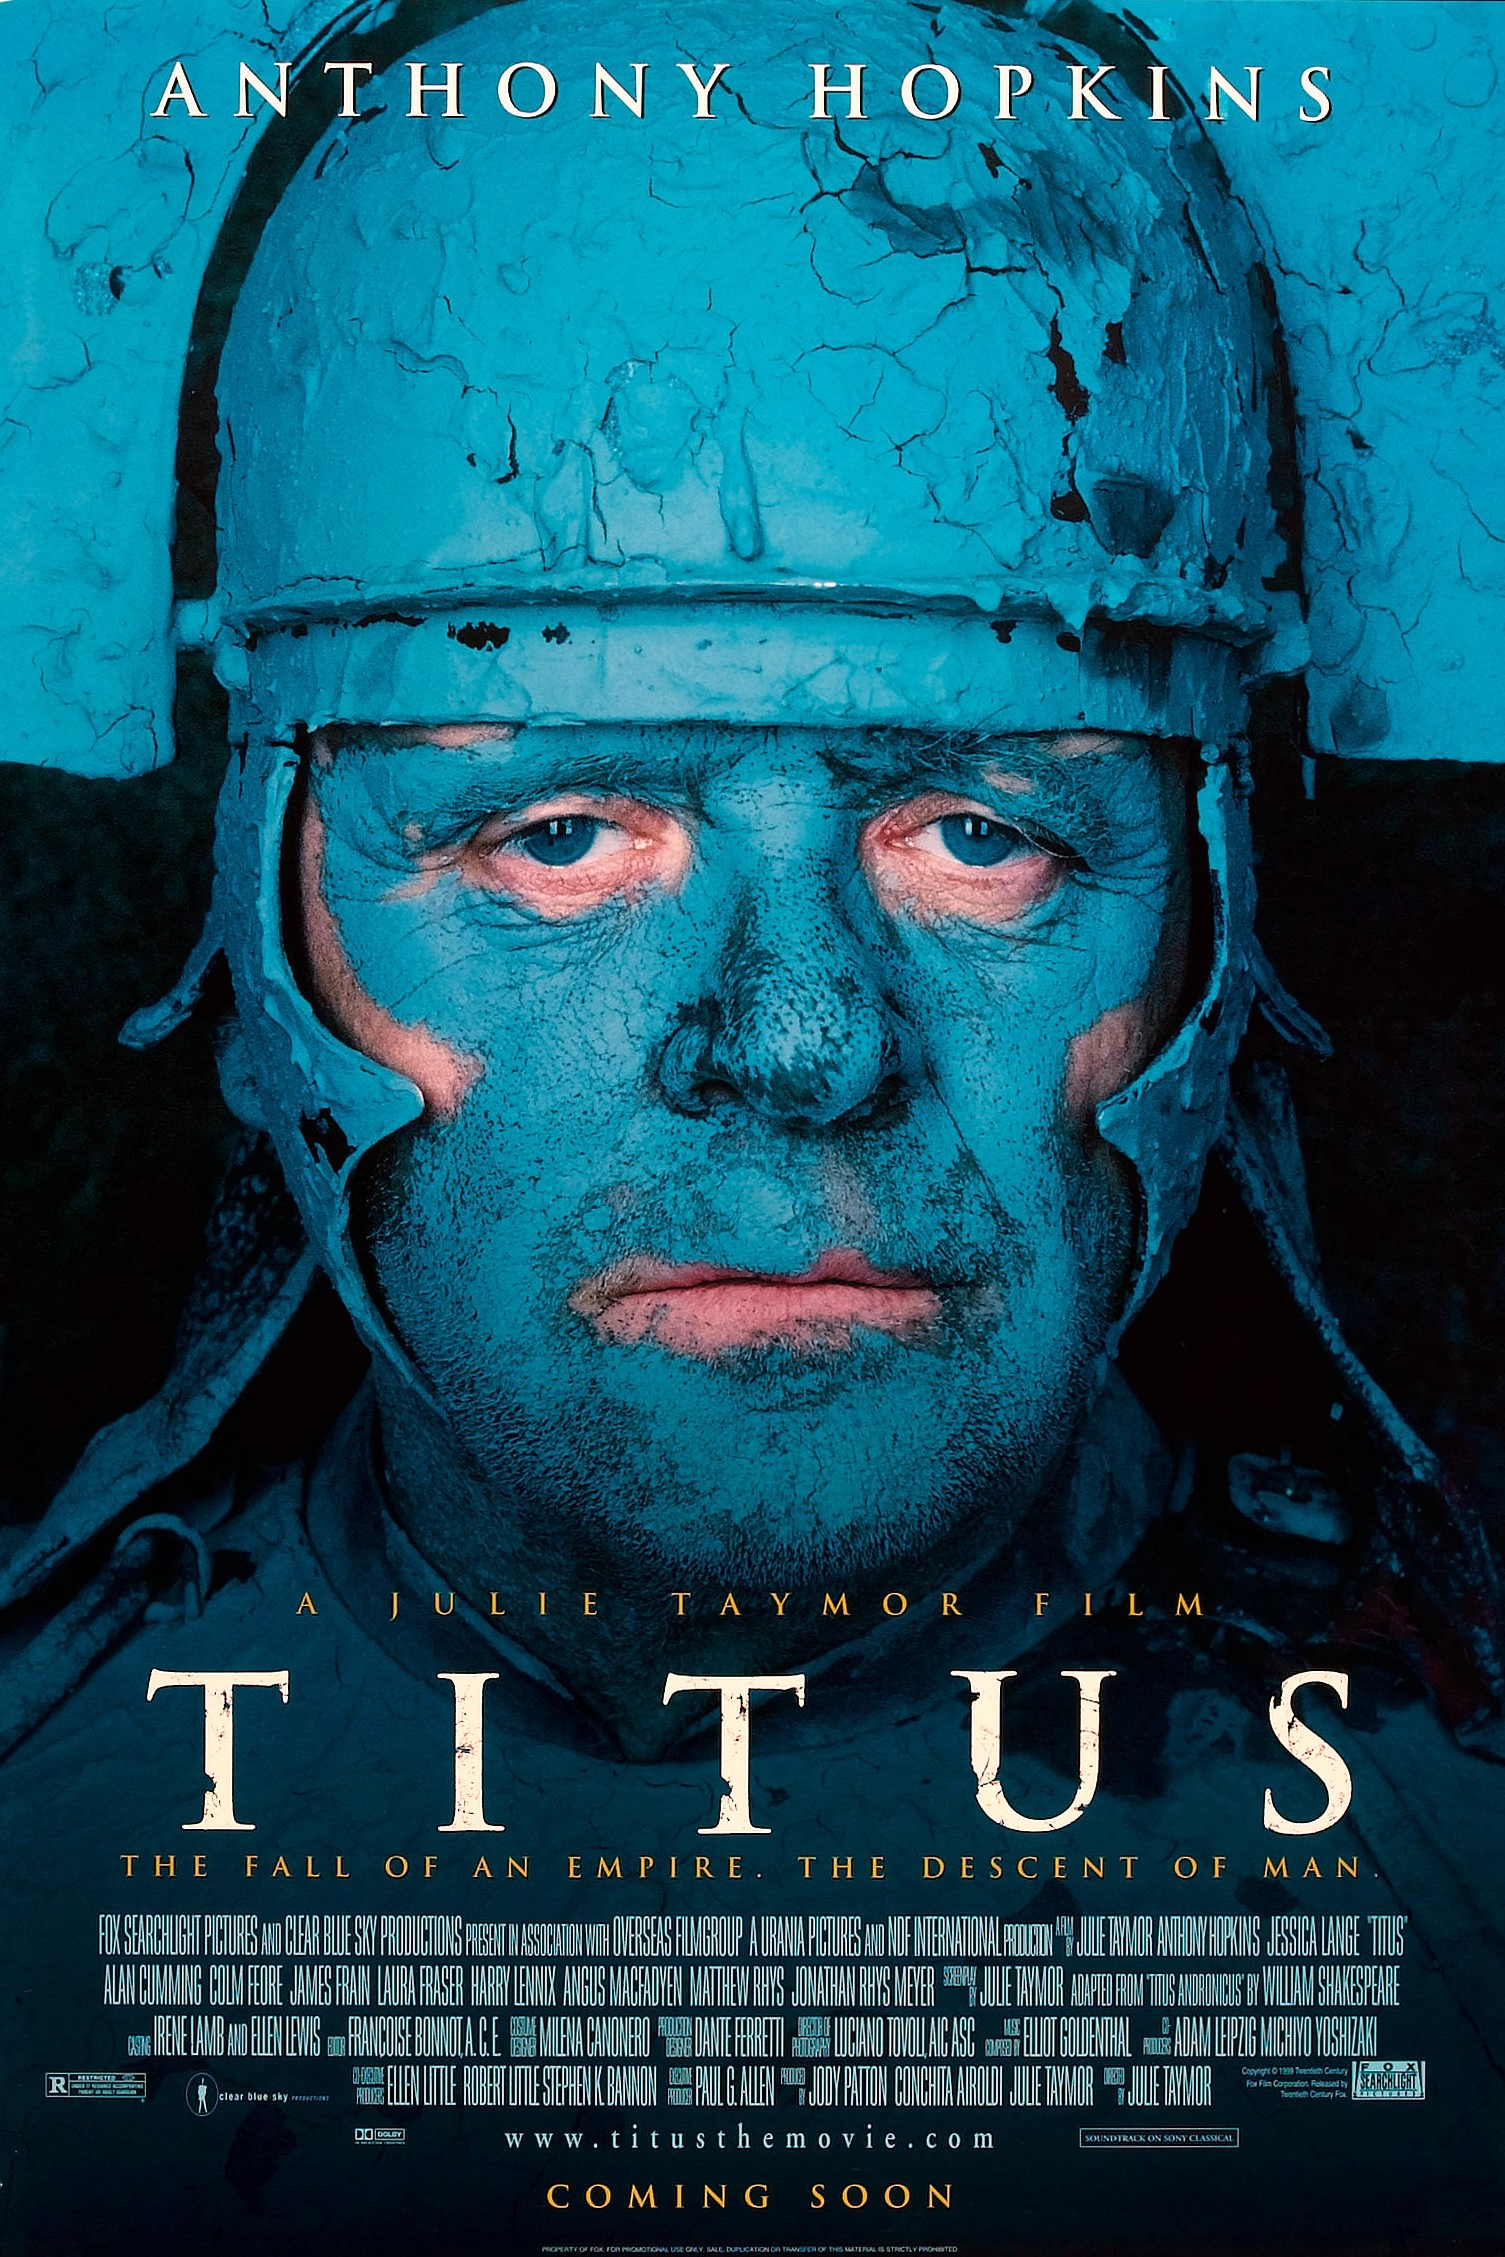 julie taymors titus andronicus Titus is a 1999 italian-american-british historical thriller film adaptation of william shakespeare's revenge tragedy titus andronicus, about the downfall of a roman julie taymor (born december 15, 1952) is an american director of theater, opera and film.